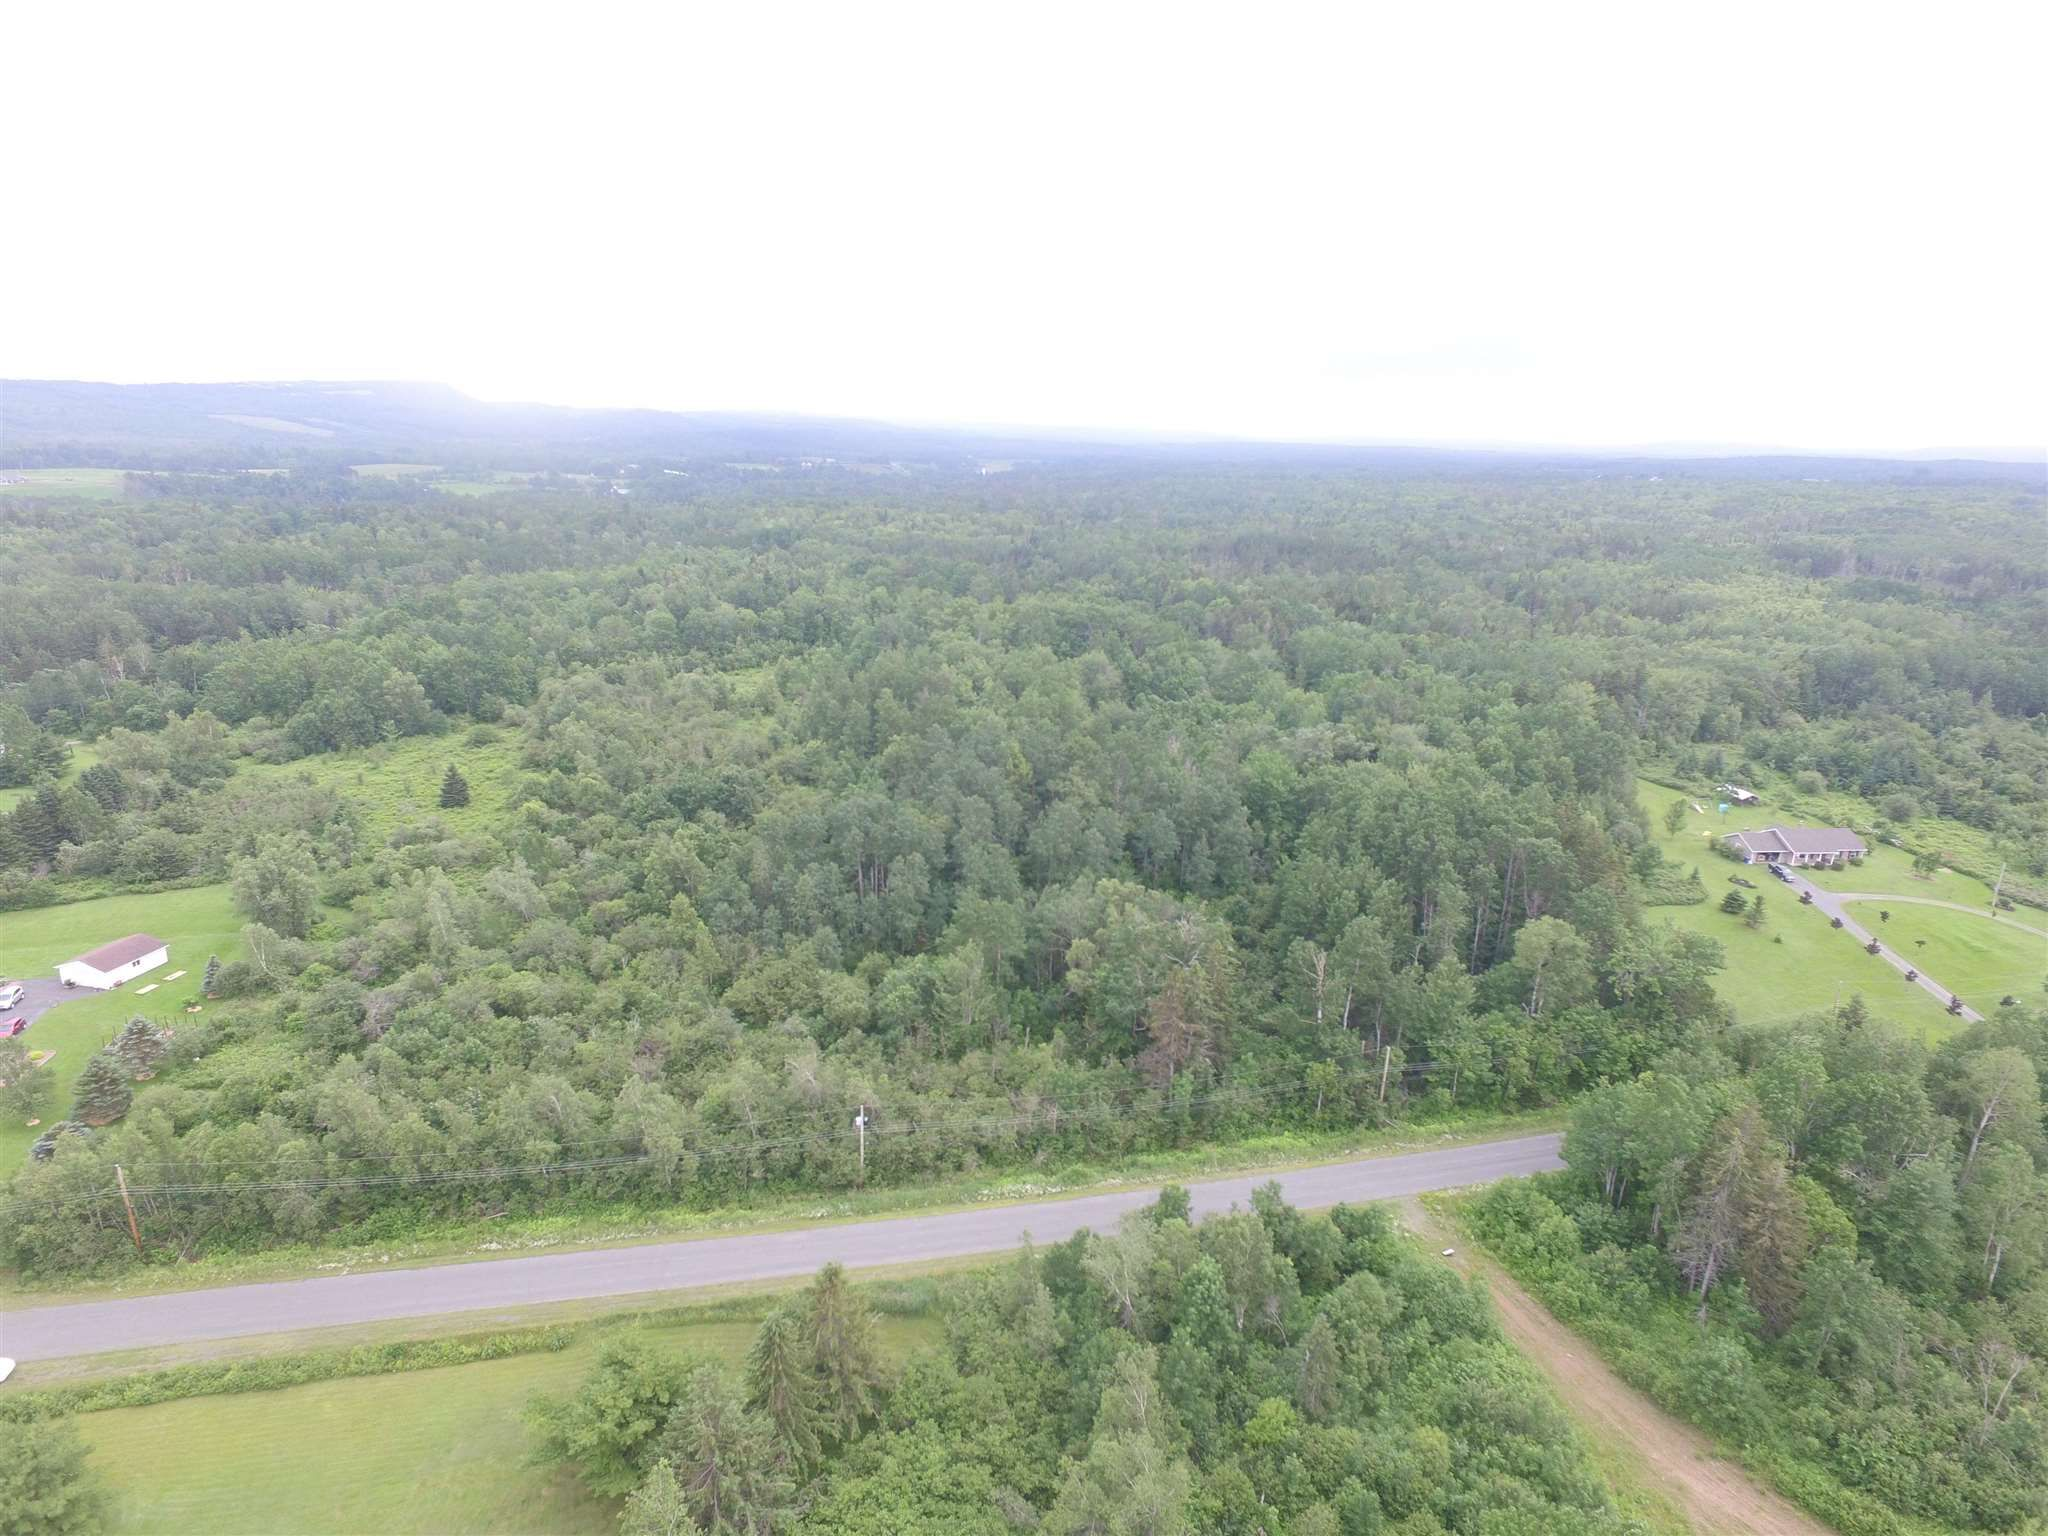 Main Photo: Lot 13 Quarry Brook Drive in Durham: 108-Rural Pictou County Vacant Land for sale (Northern Region)  : MLS®# 202117809